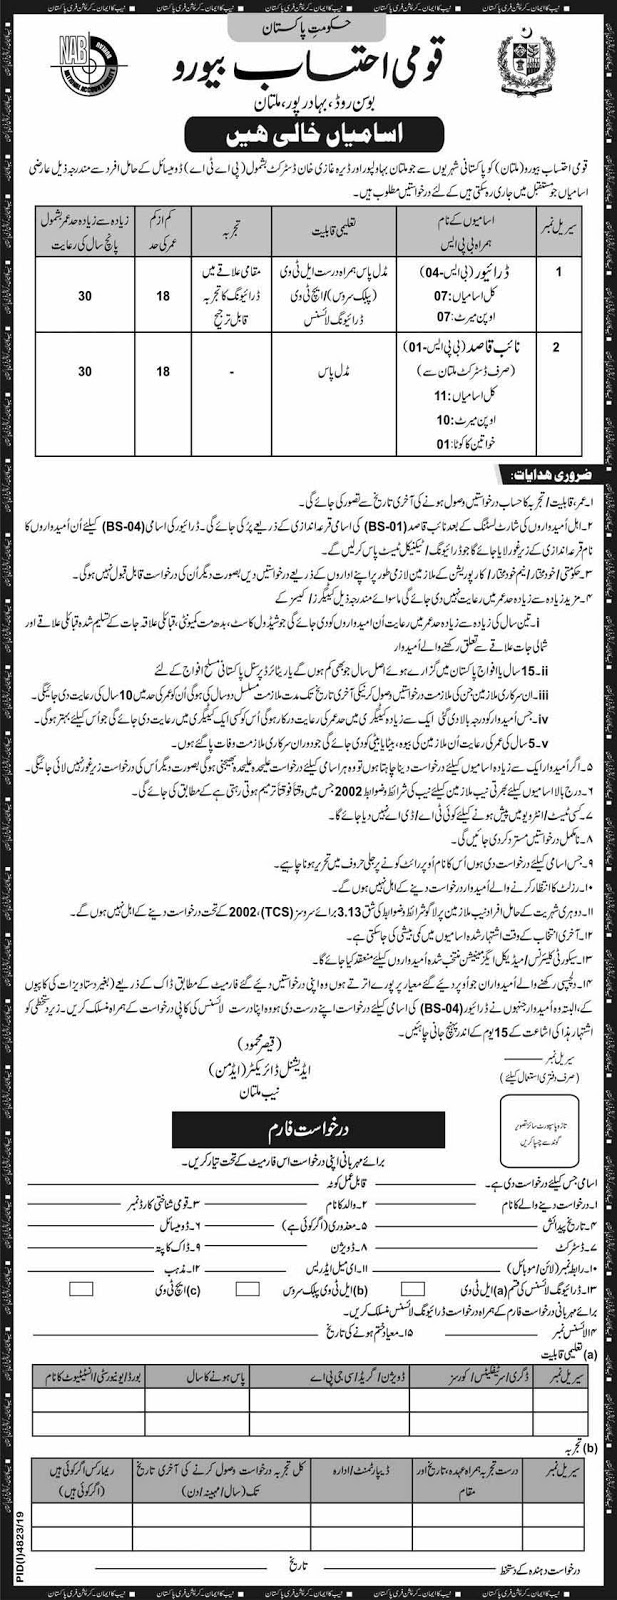 National Accountability Bureau (NAB) Jobs For Driver, Naib Qasid and Others February 2020